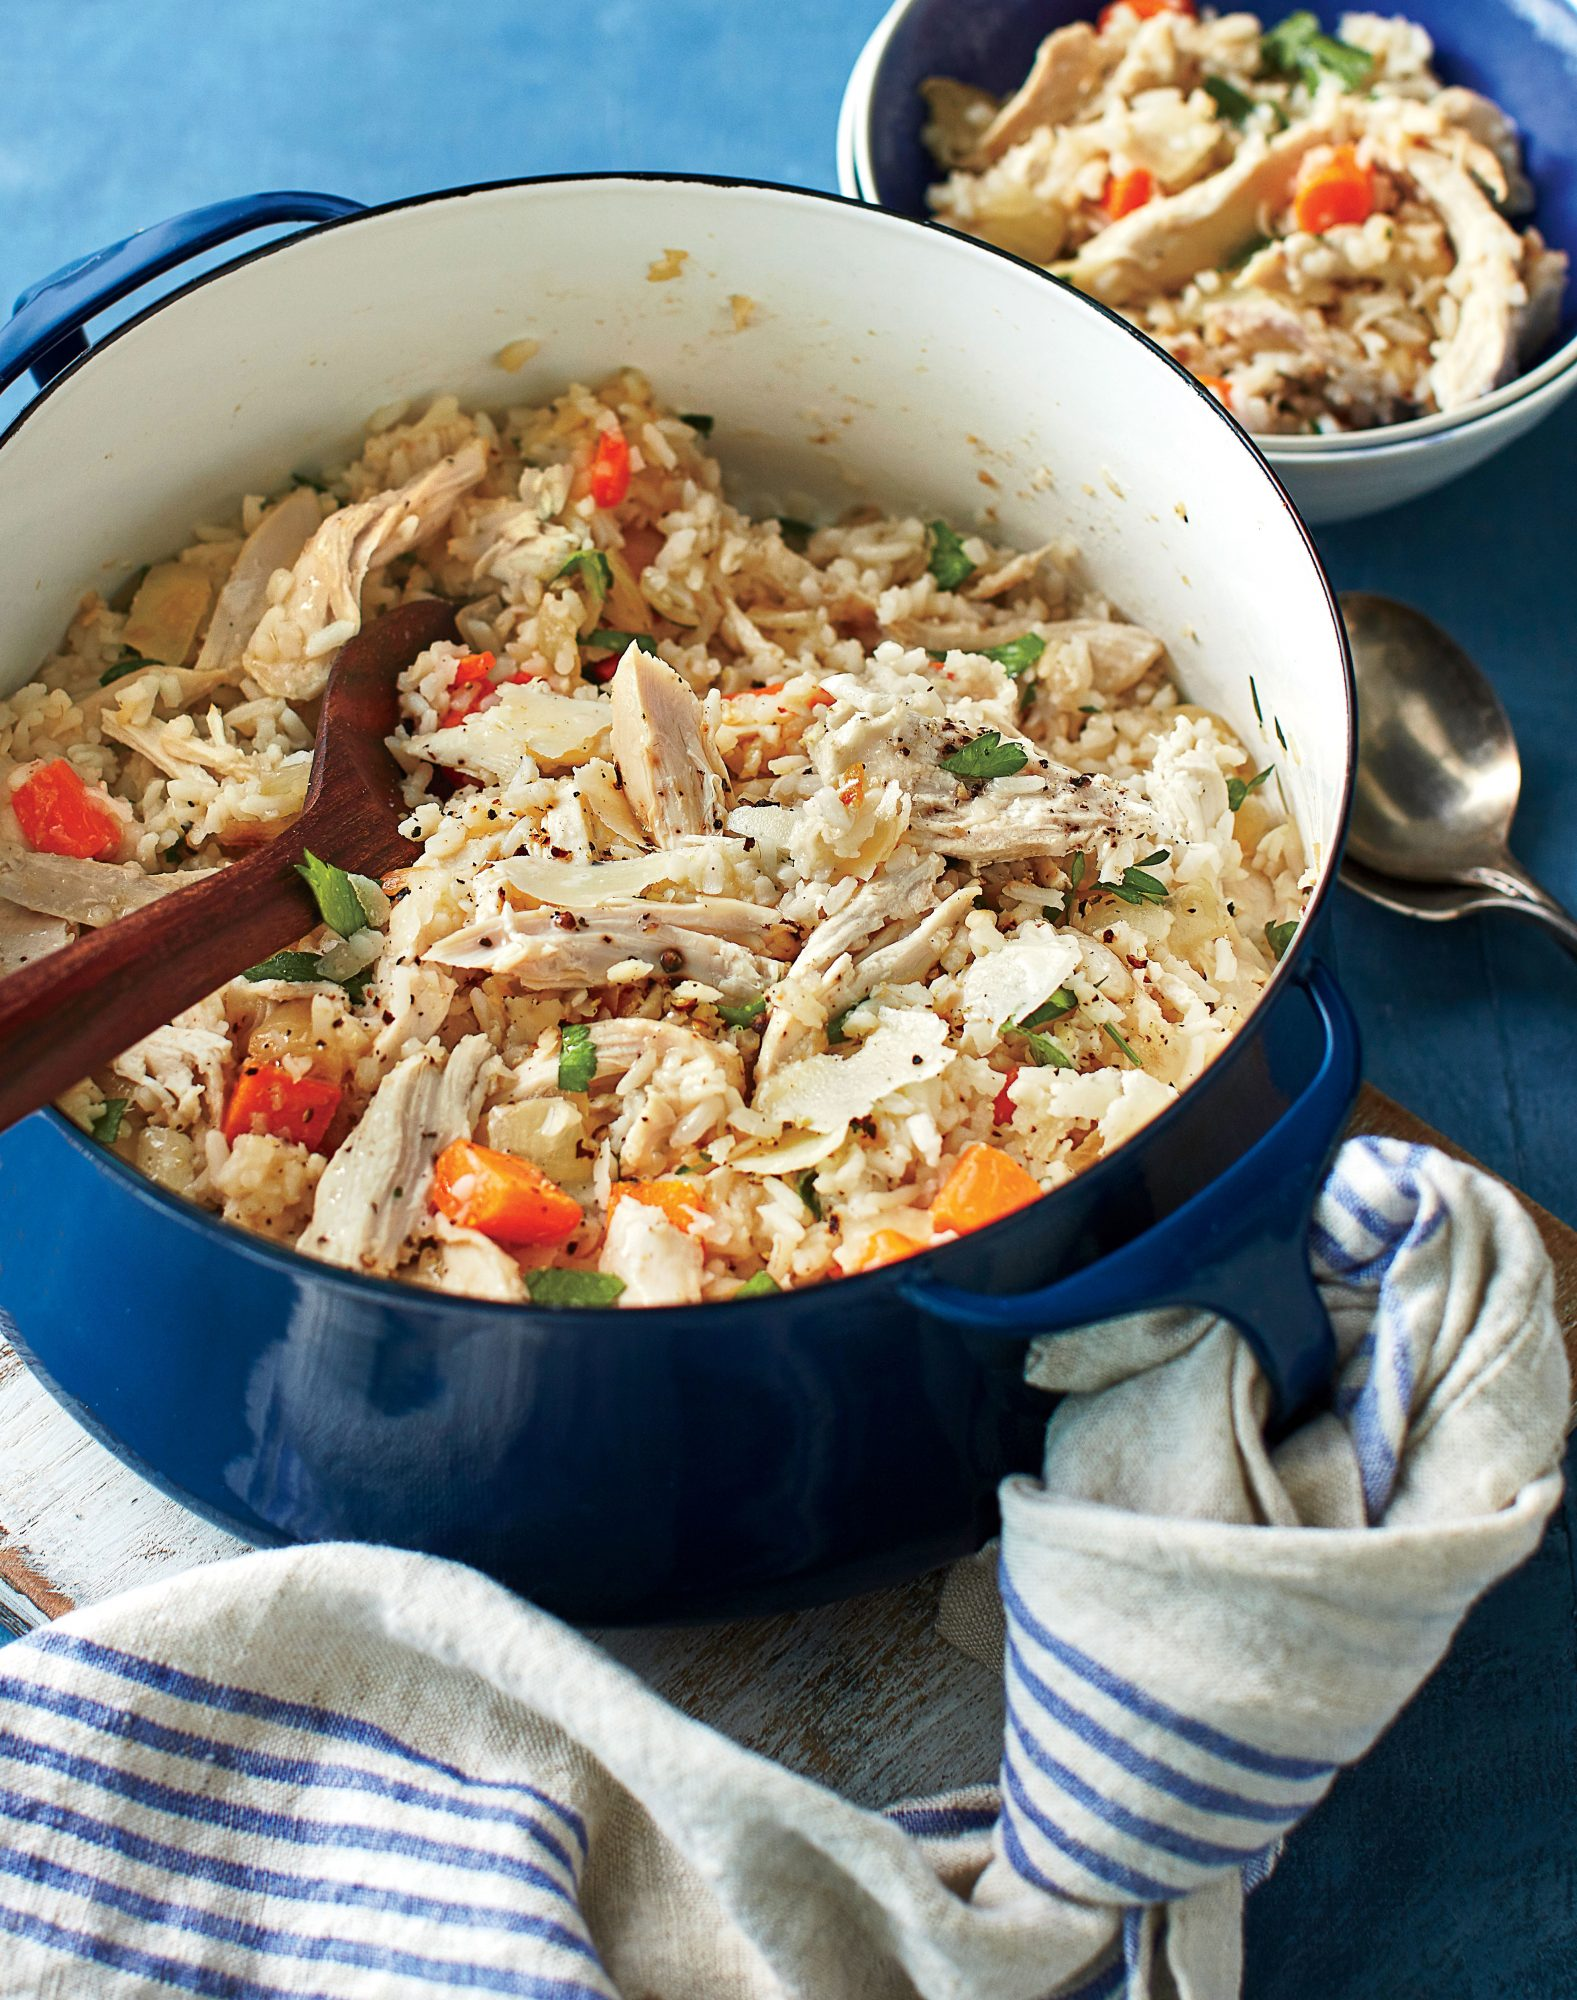 Dutch Oven Chicken Recipes For Your Easiest-Ever Weeknight Meals